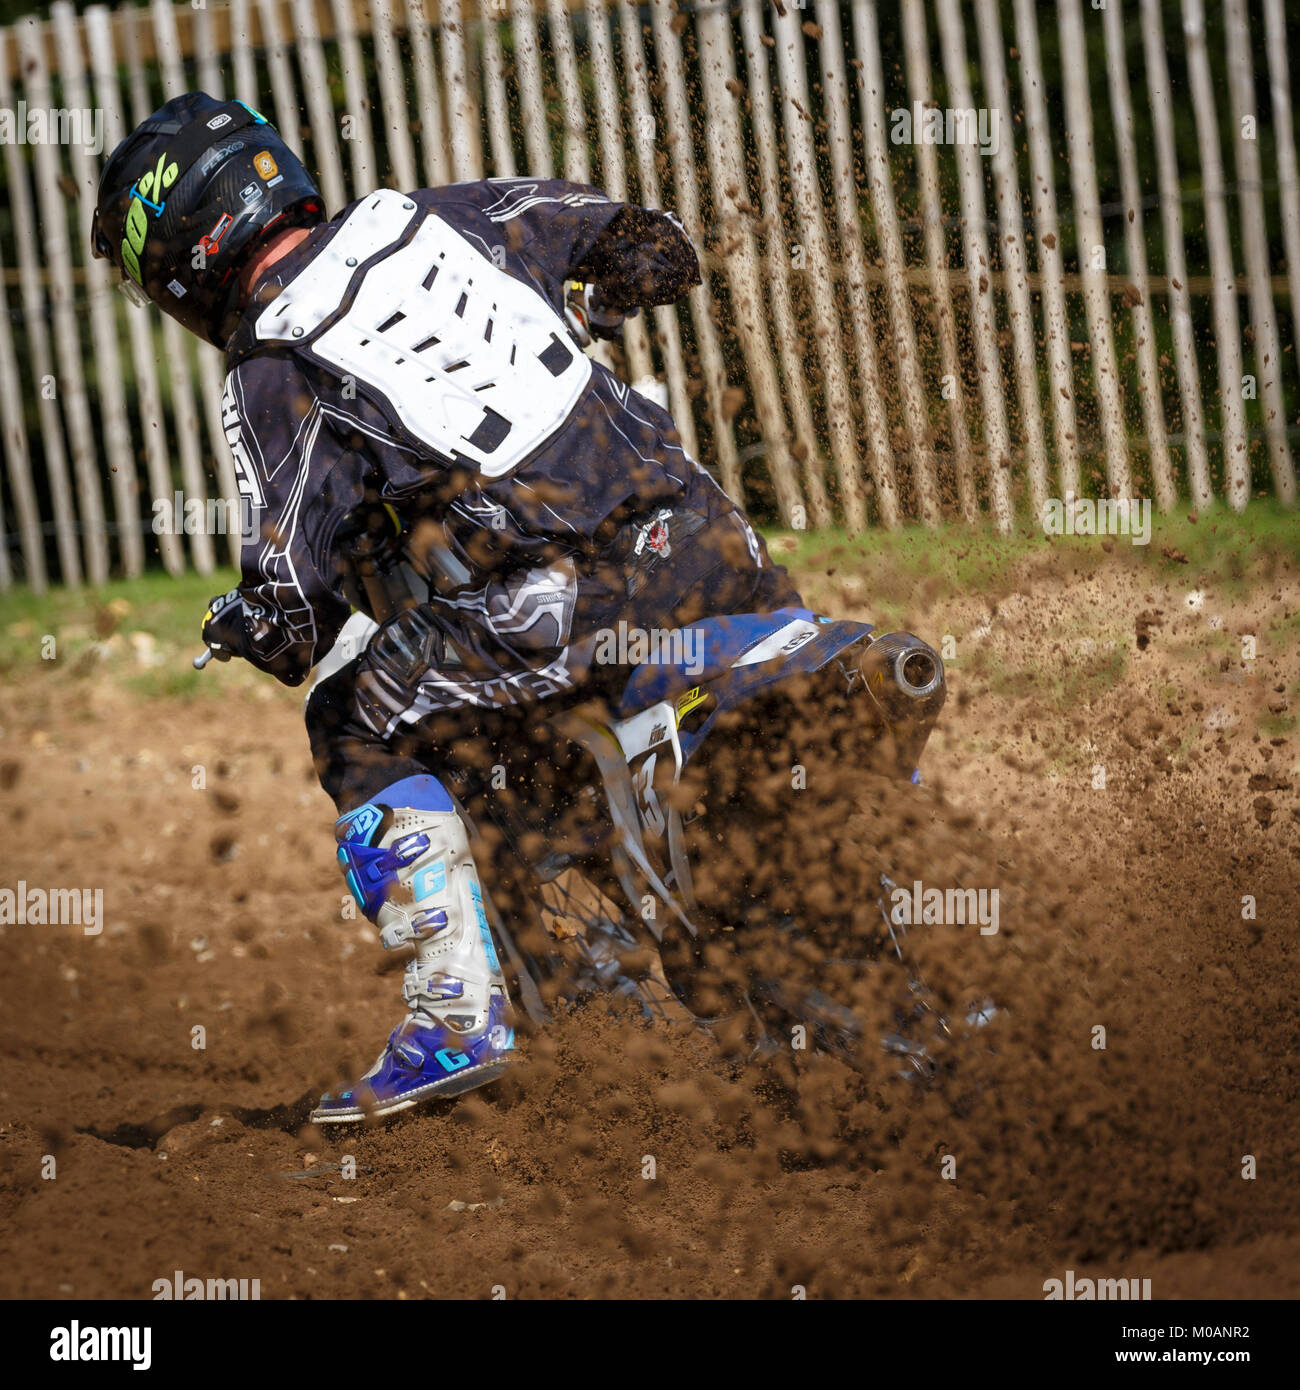 Justin King on the Husqvarna 250 at the NGR & ACU Eastern EVO Championships, Cadders Hill, Lyng, Norfolk, UK. - Stock Image